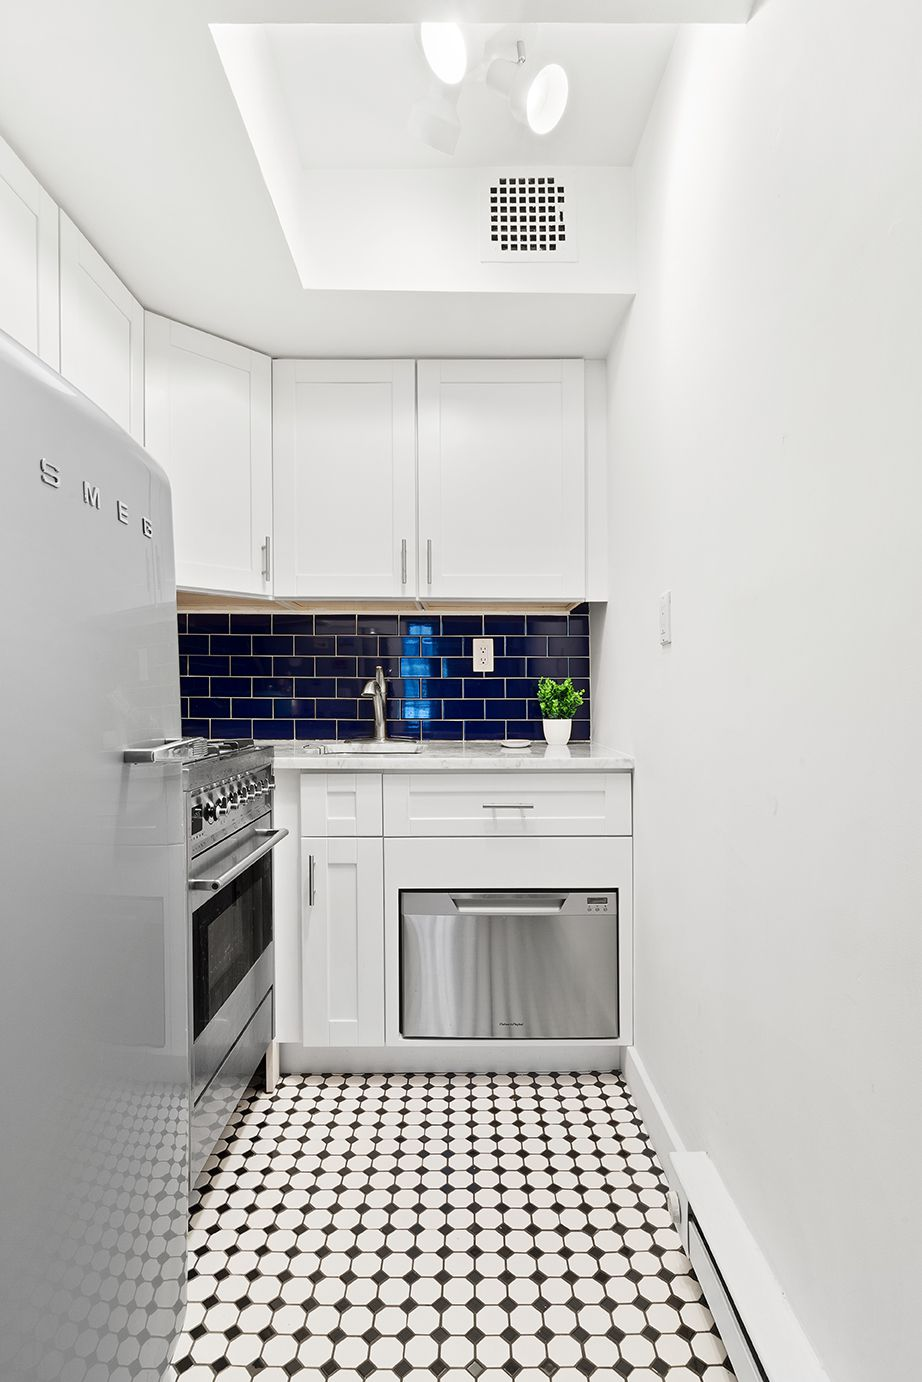 A kitchen with black and white tile floor and white cabinetry.